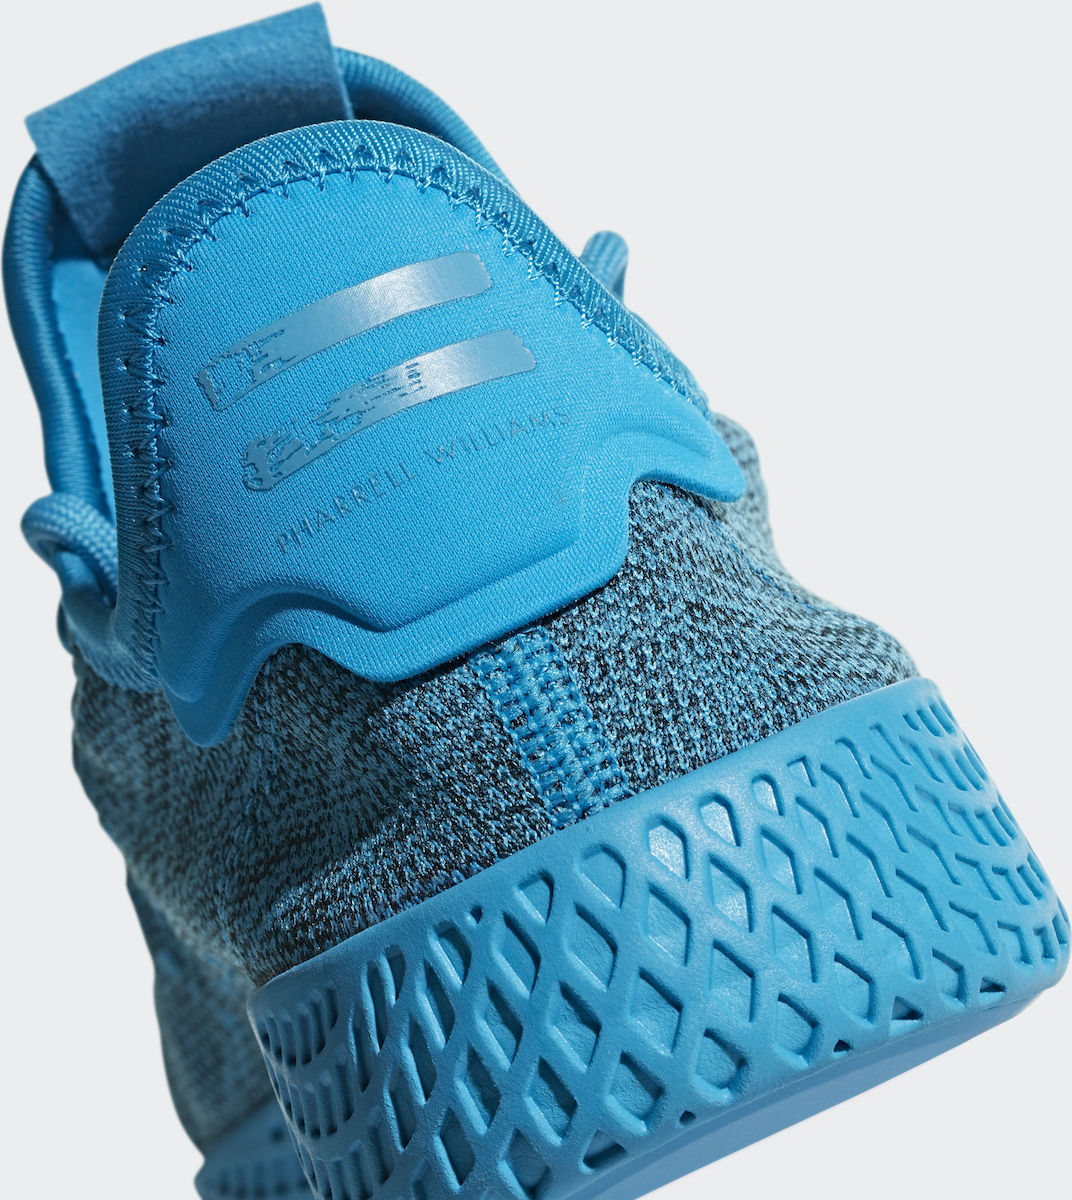 Adidas Pharrell Williams Tennis HU B41928 - Skroutz.gr 9adb5b2bfe6